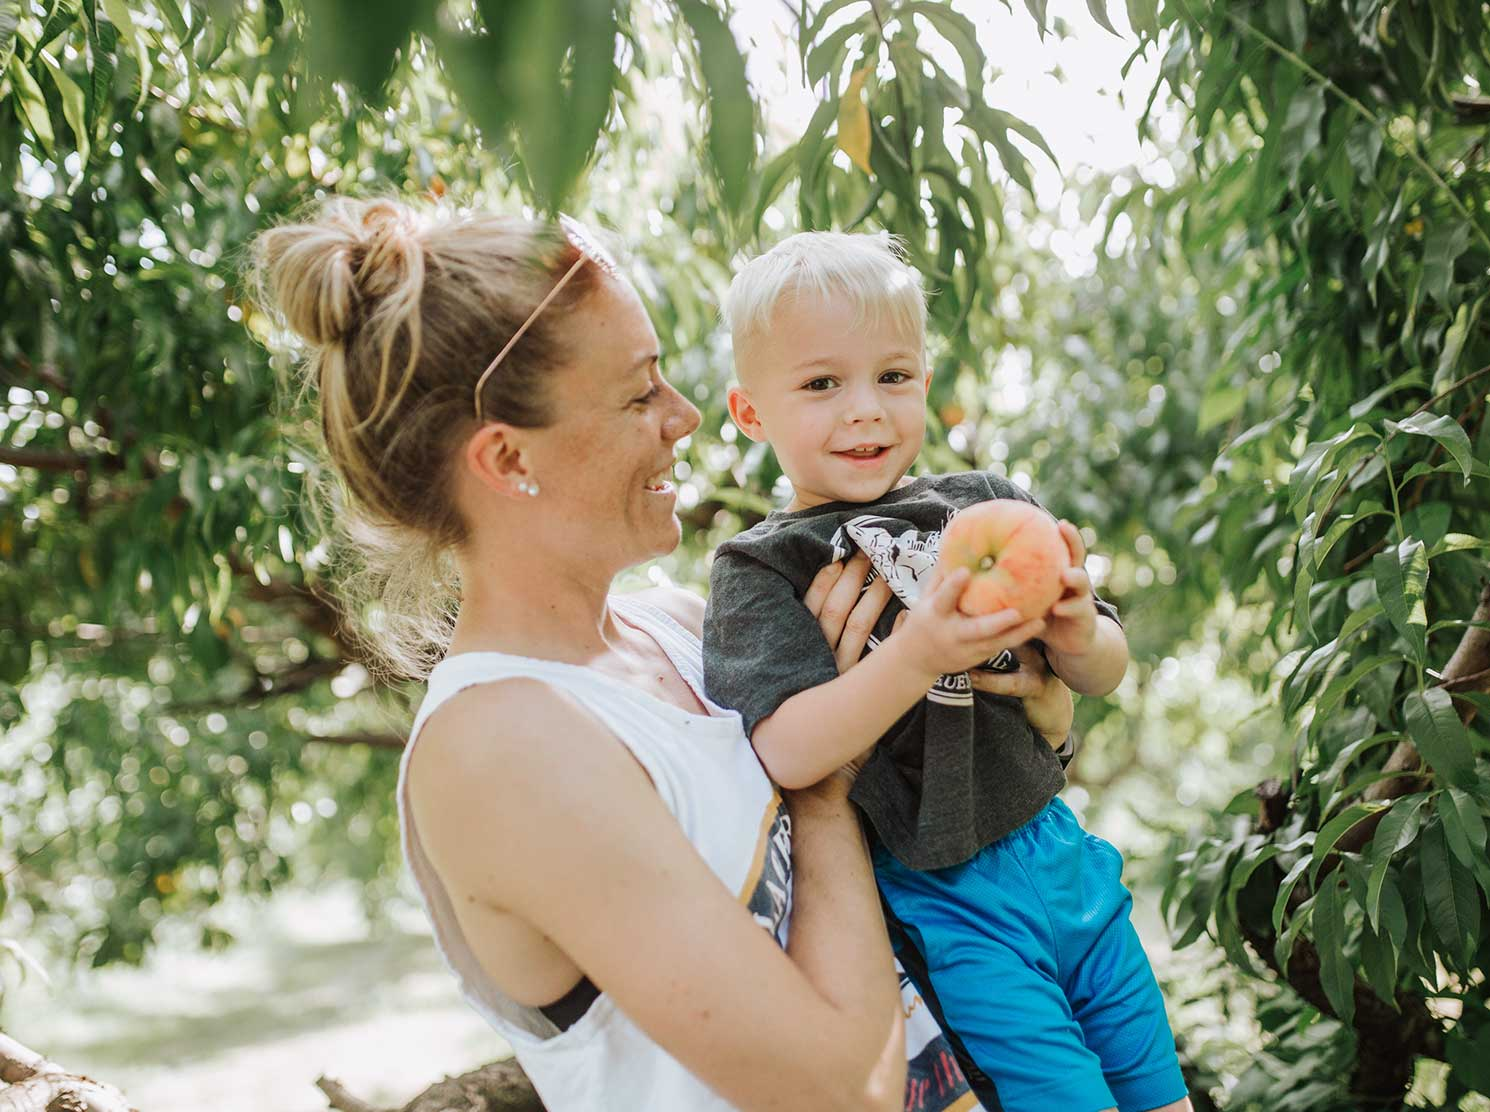 Mom helping son pick fruit from tree